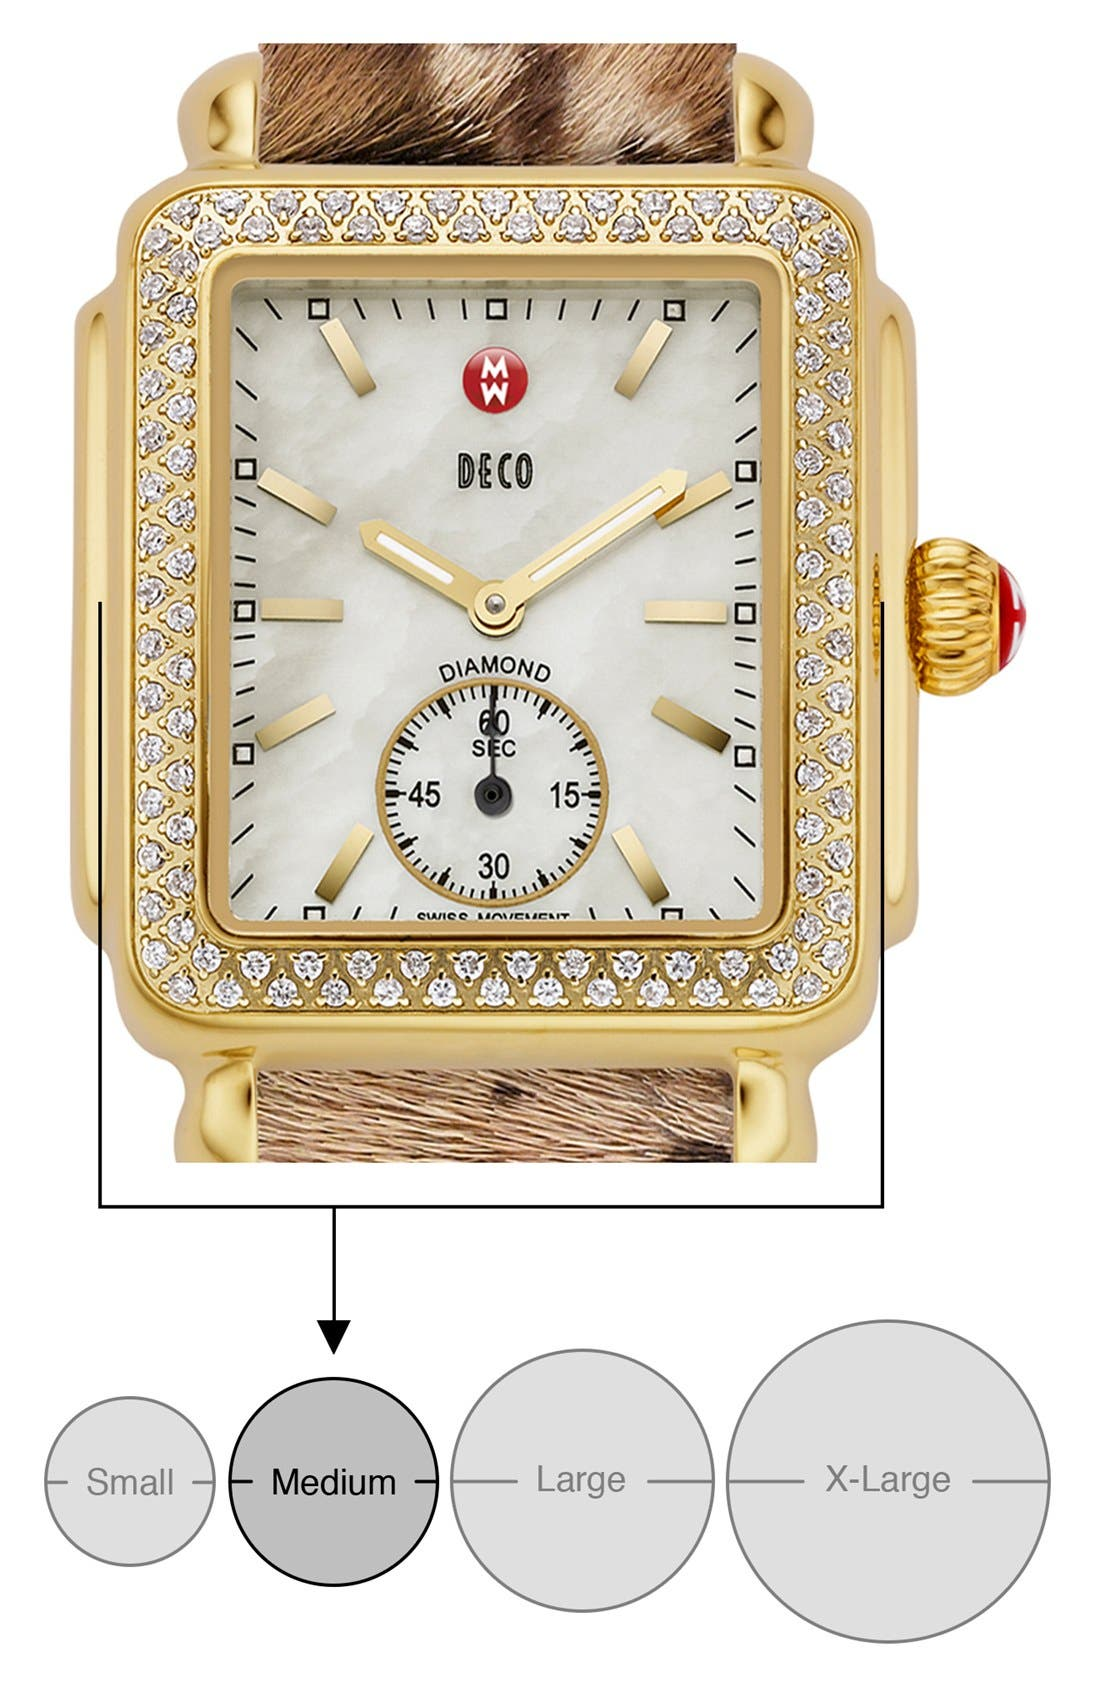 Deco 16 Diamond Gold Plated Watch Head, 29mm x 31mm,                             Alternate thumbnail 7, color,                             GOLD